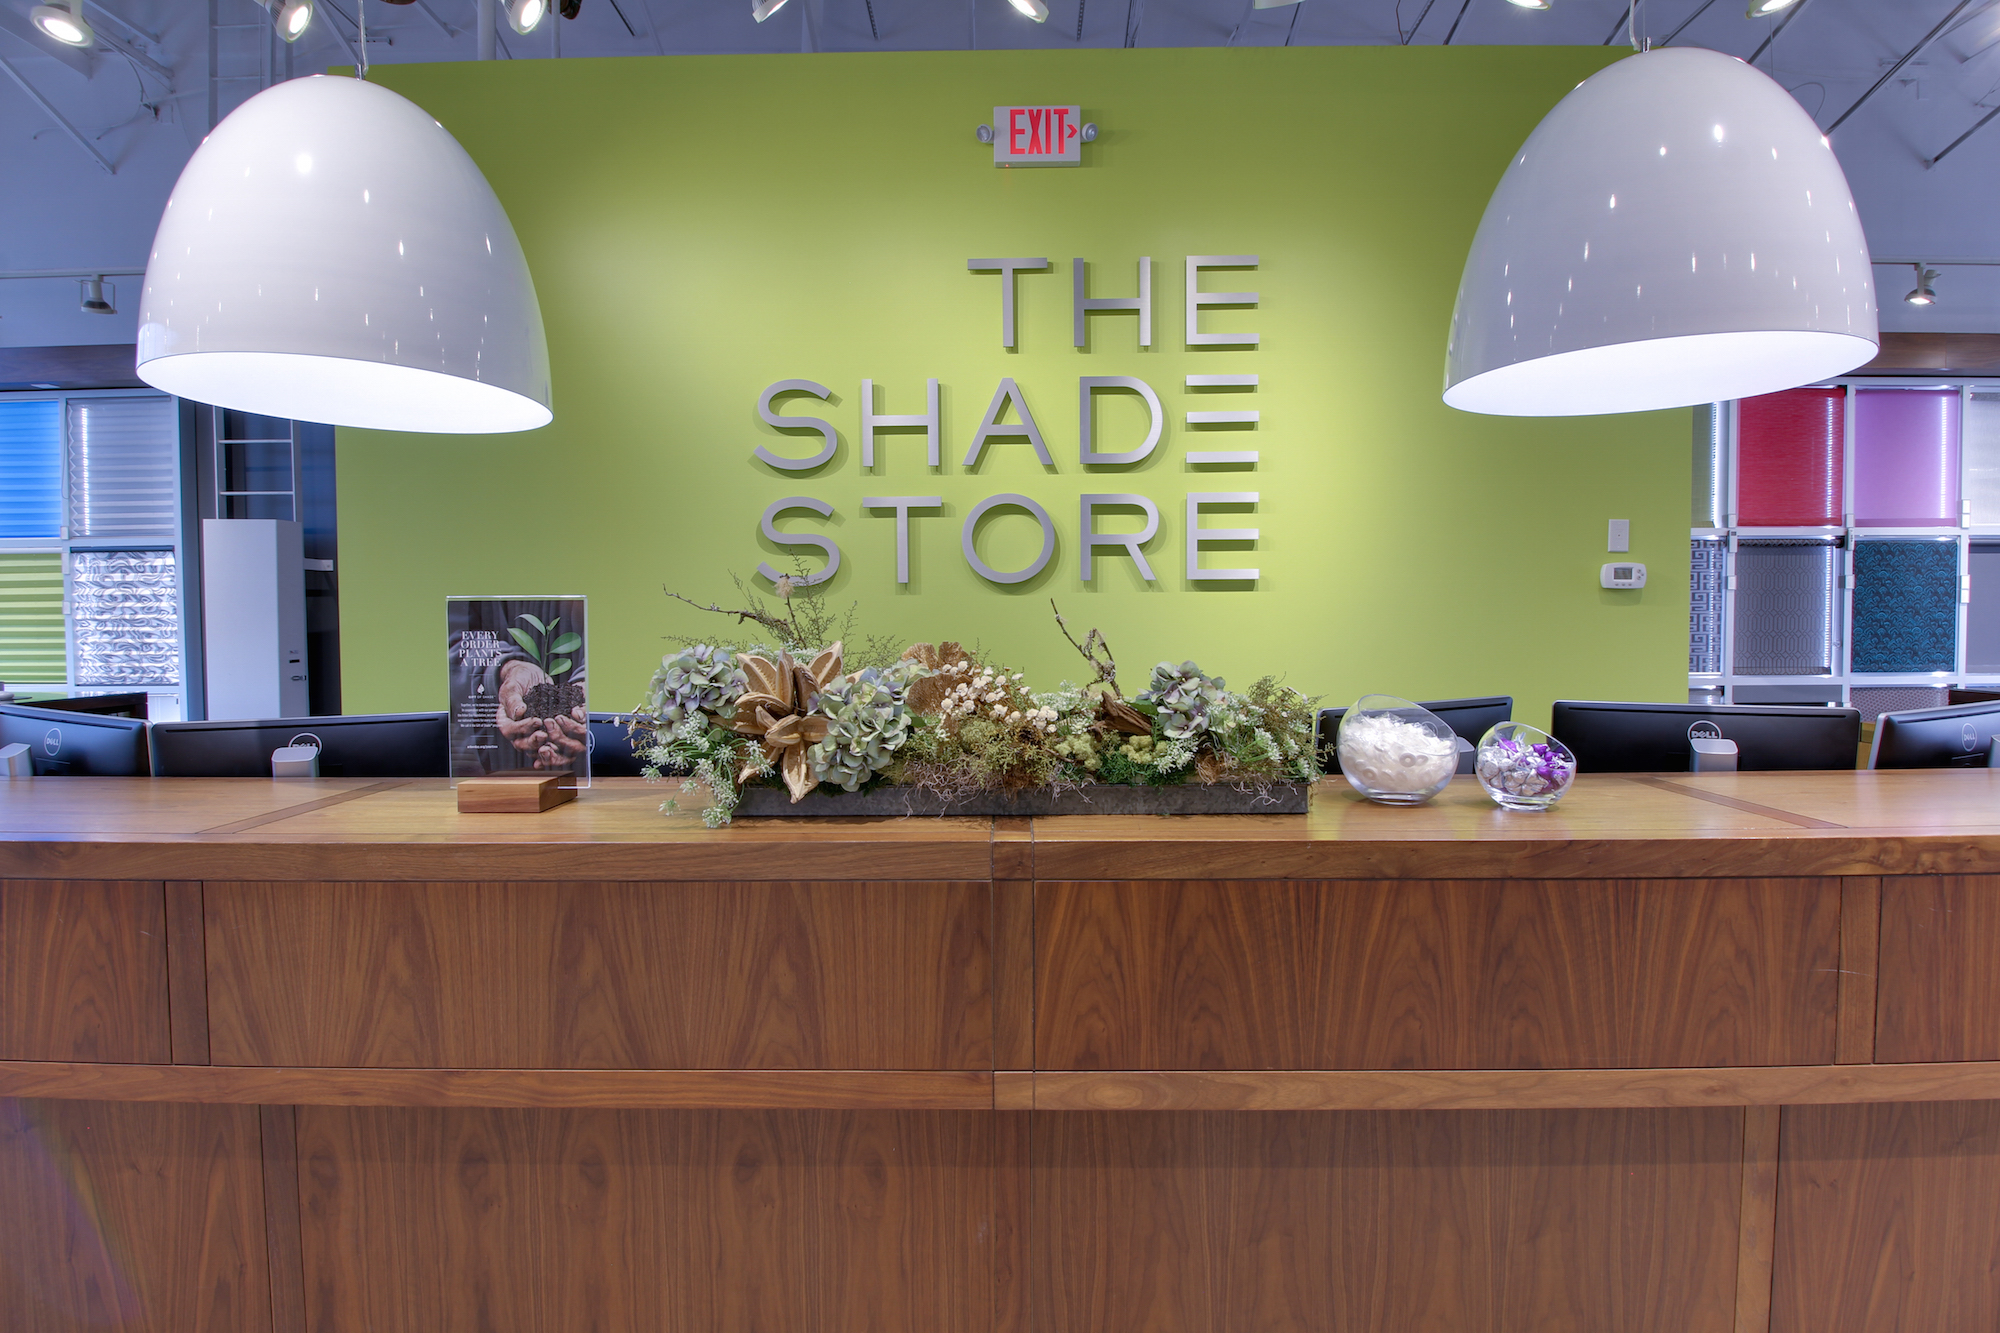 The Shade Store image 4